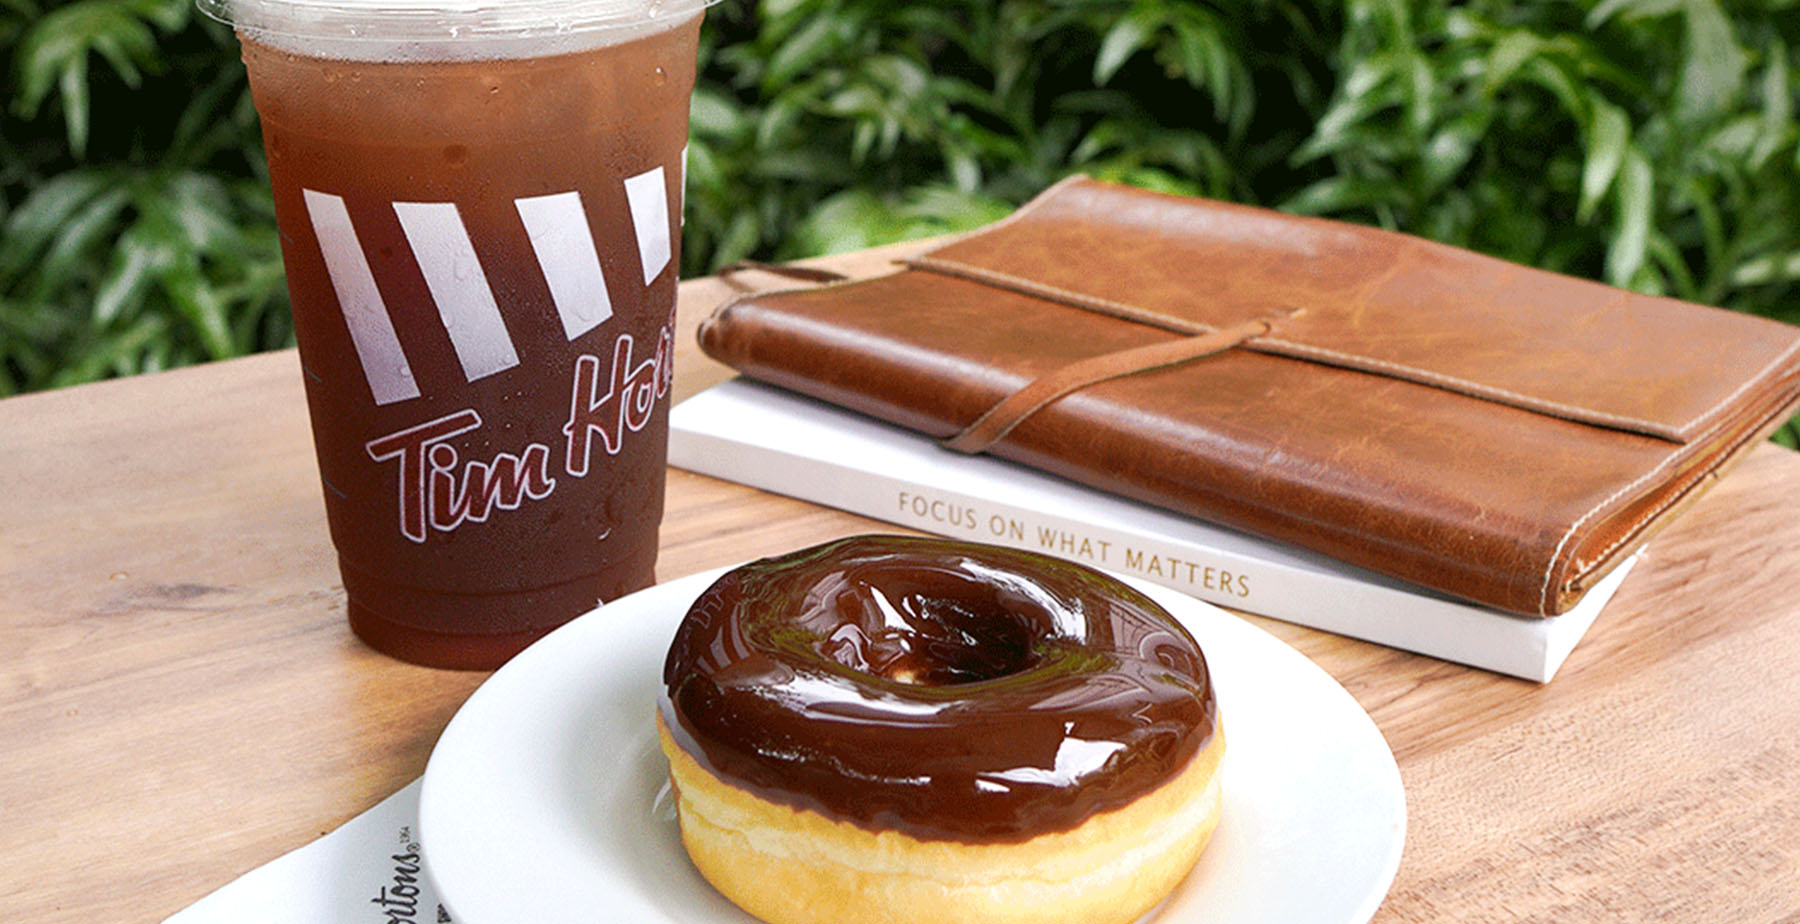 A chocolate donut and coffee from Tim Hortons